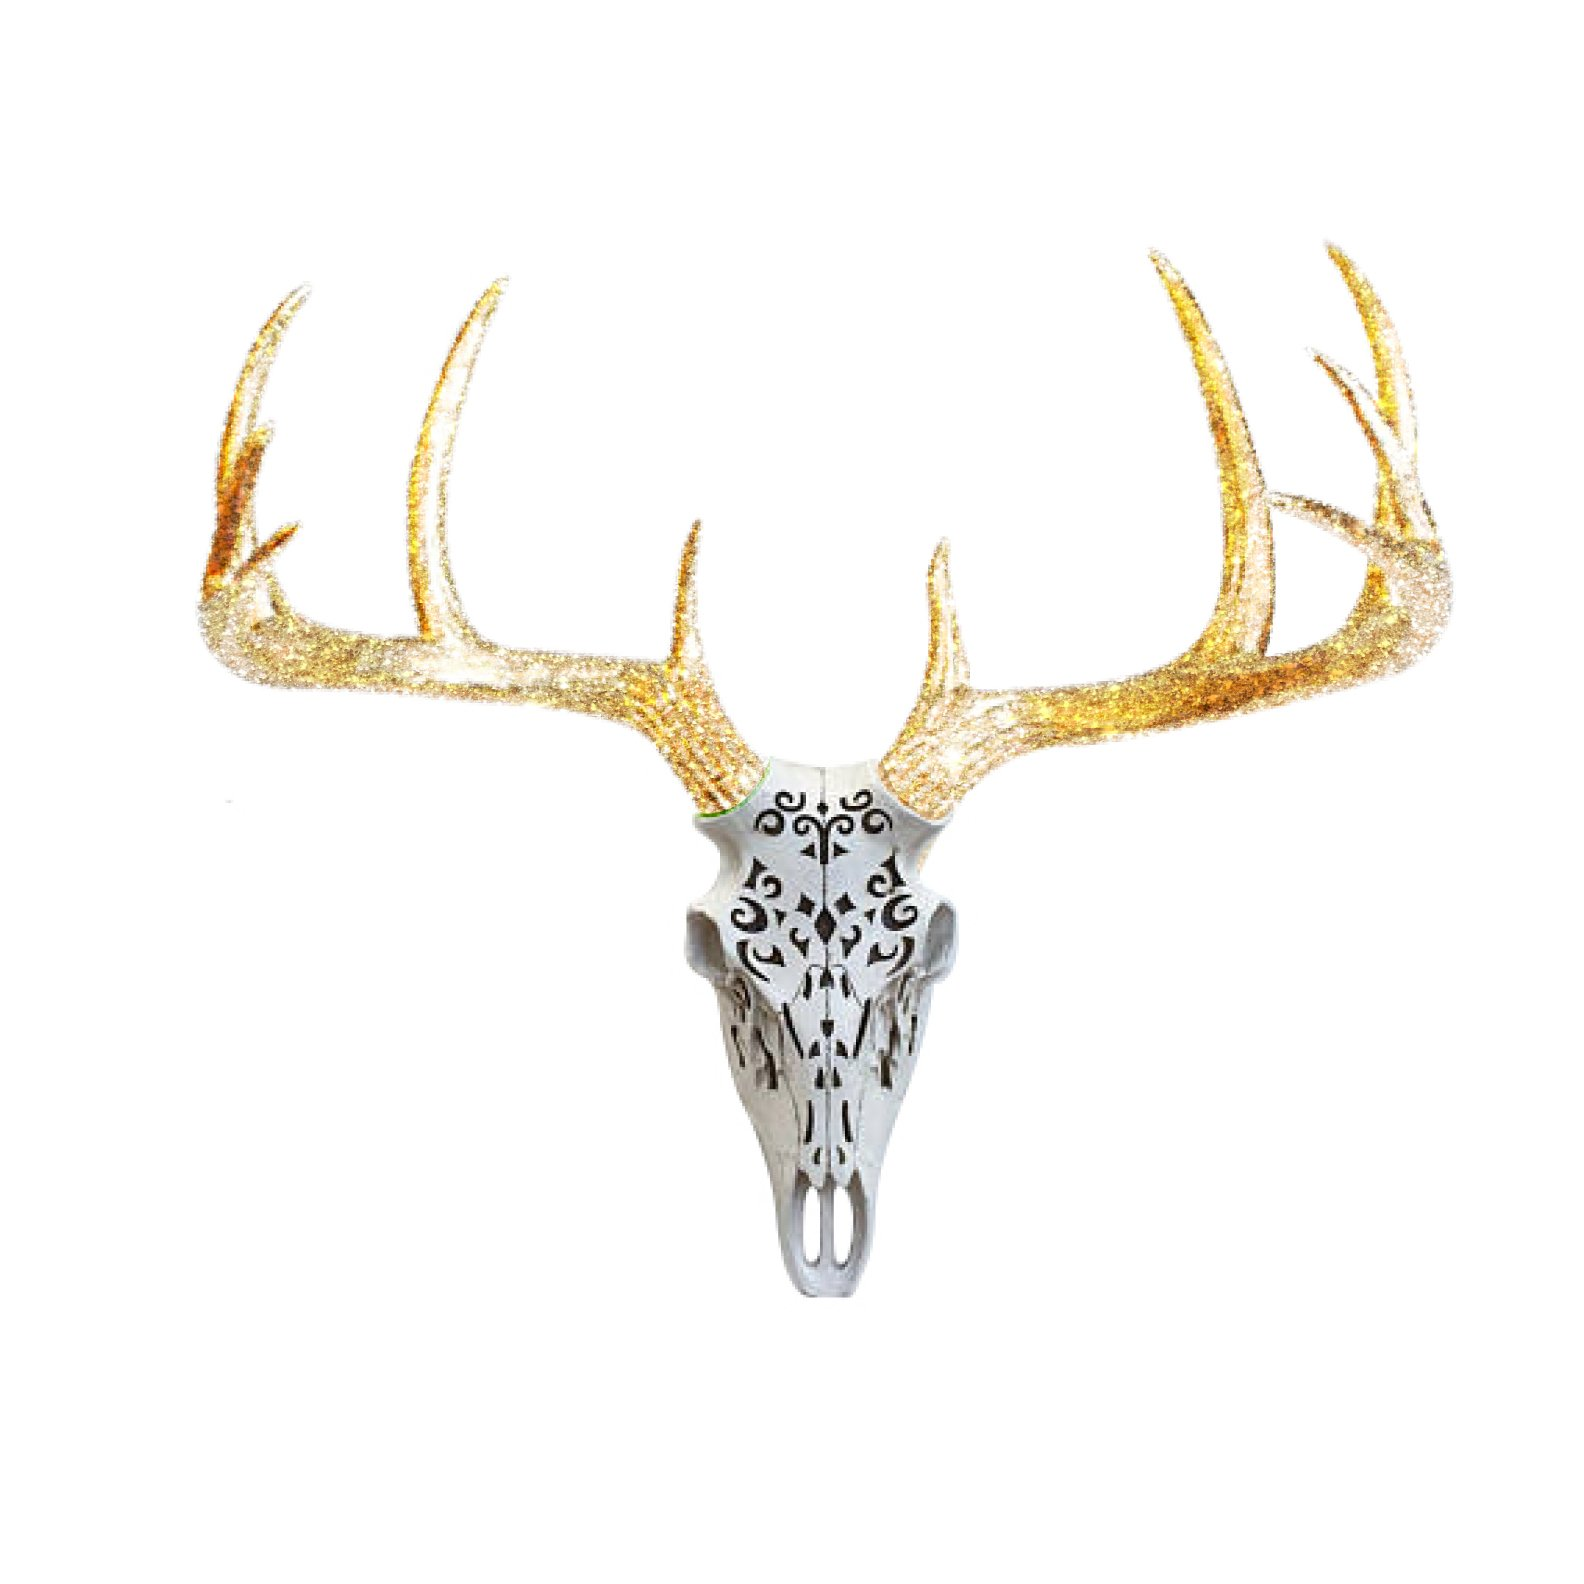 Carved Decorative Deer Skull Animal Head by Wall Charmers | Faux Fake Taxidermy Resin Antlers Mount Decor Fauxidermy Plastic Ceramic Mounted Engraved | White + Gold Glitter Antlers